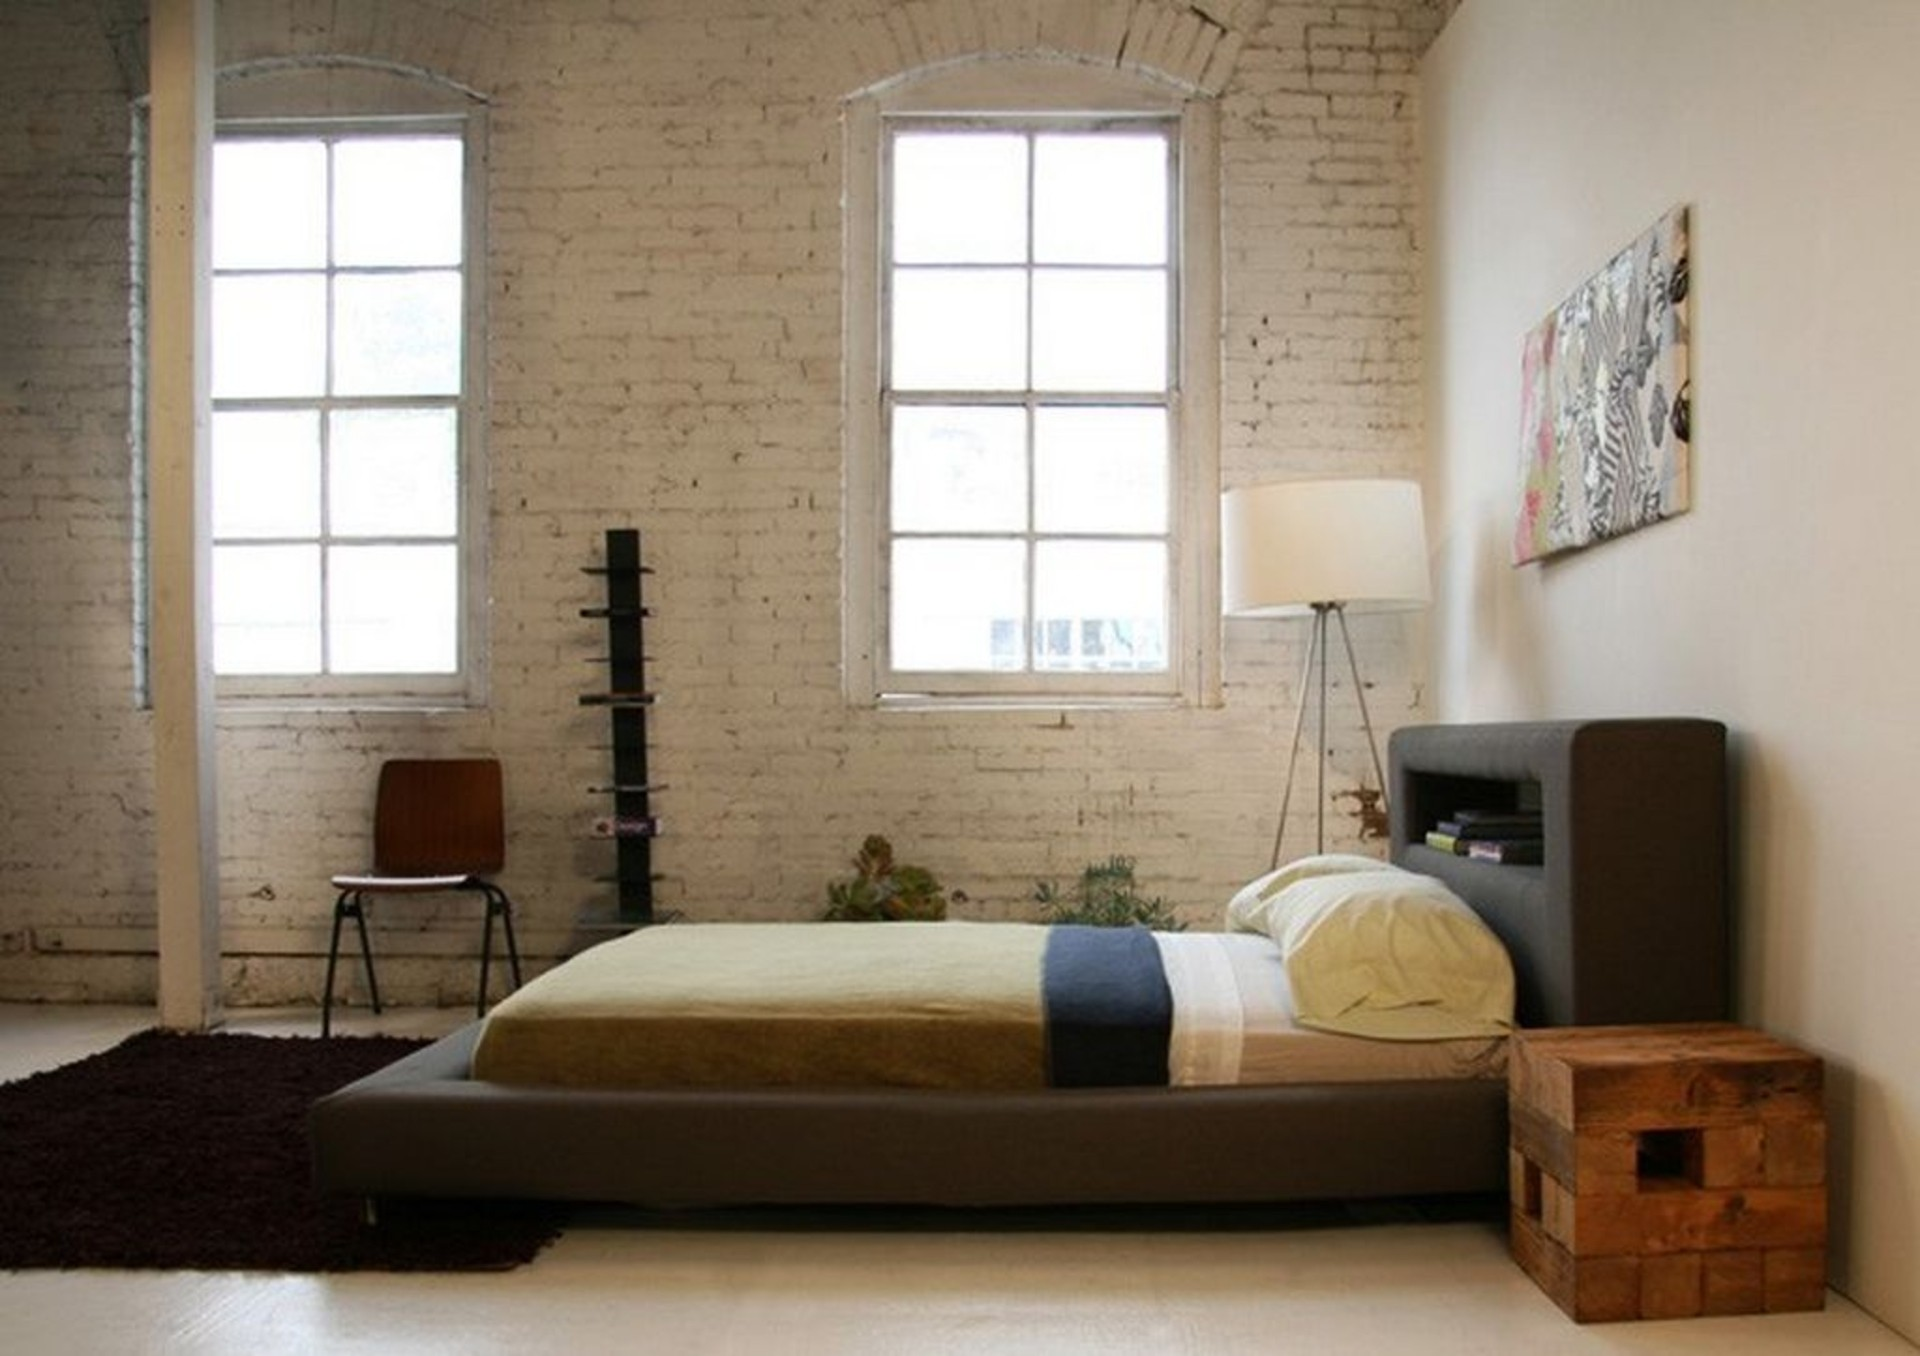 Minimalist platform bed designs and pictures homesfeed for Minimalist wall decor ideas